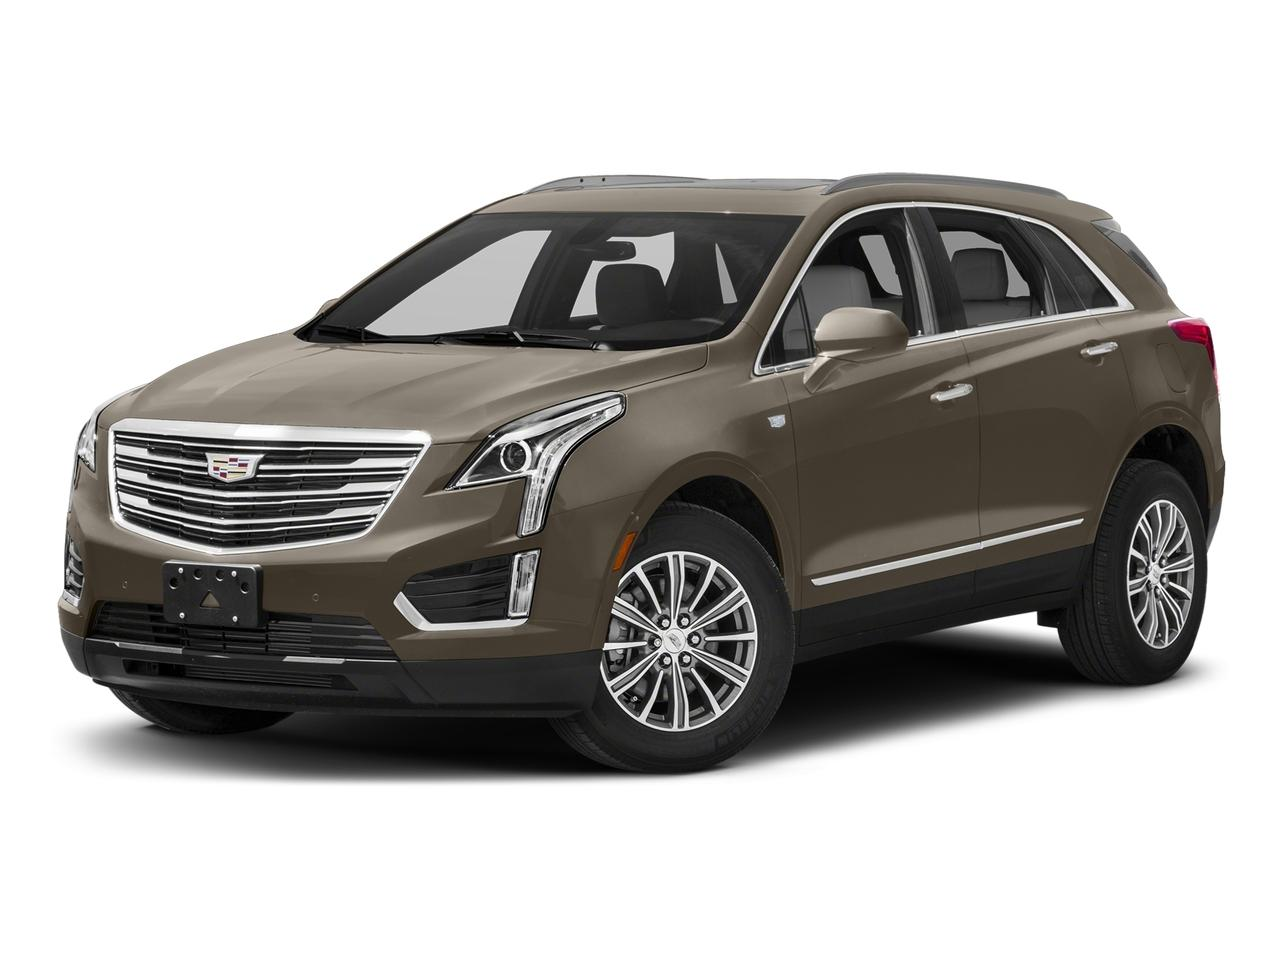 2018 Cadillac XT5 Vehicle Photo in TERRYVILLE, CT 06786-5904